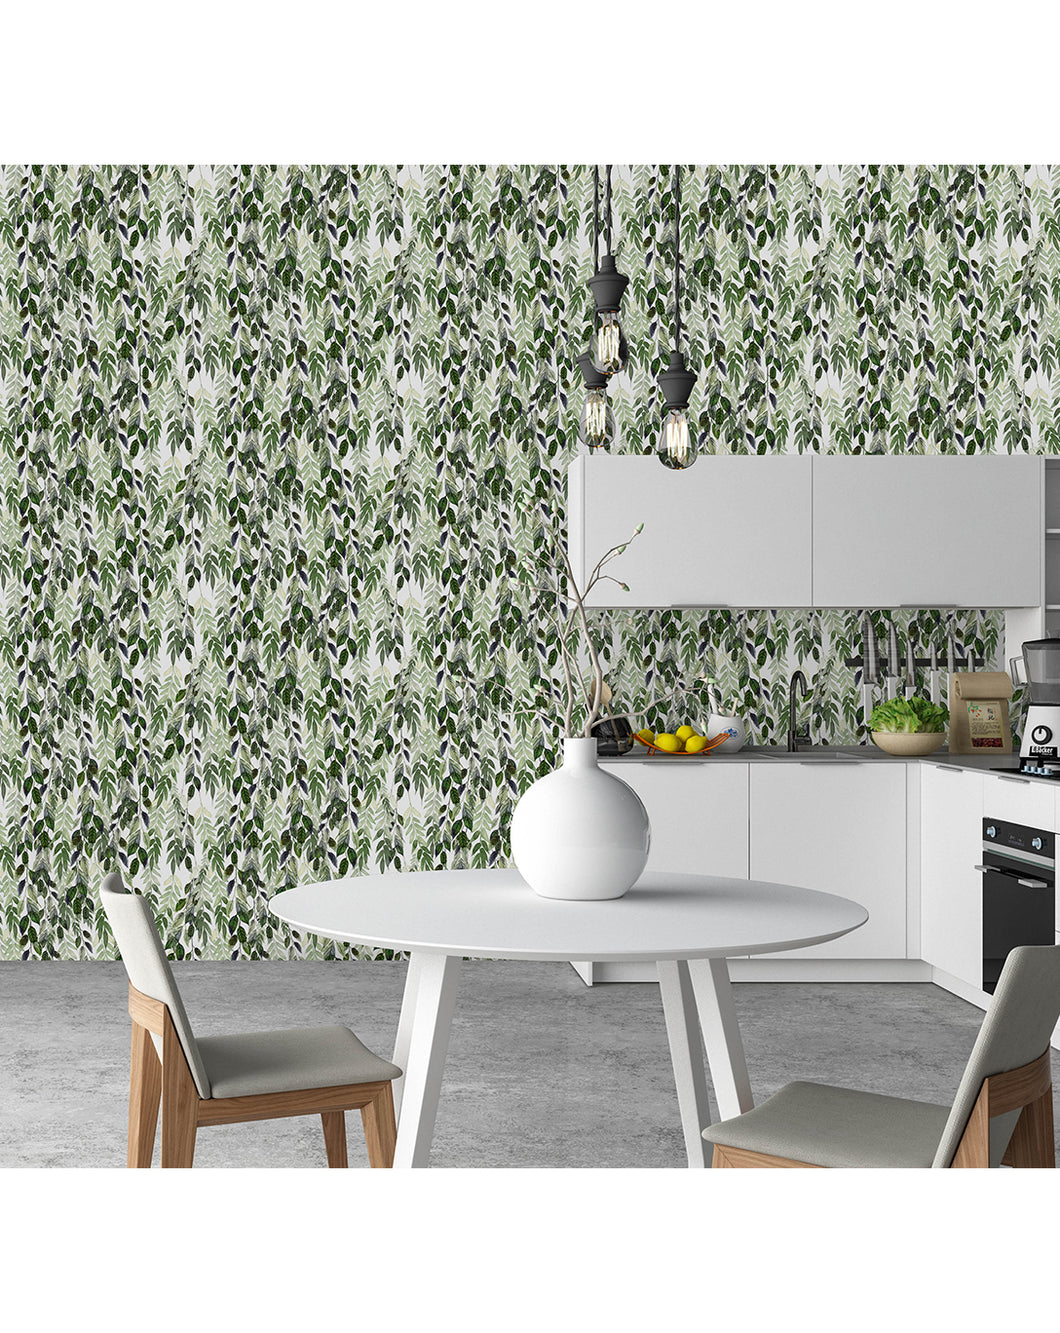 Self Adhesive Hanging Vines With Green Leaves Removable